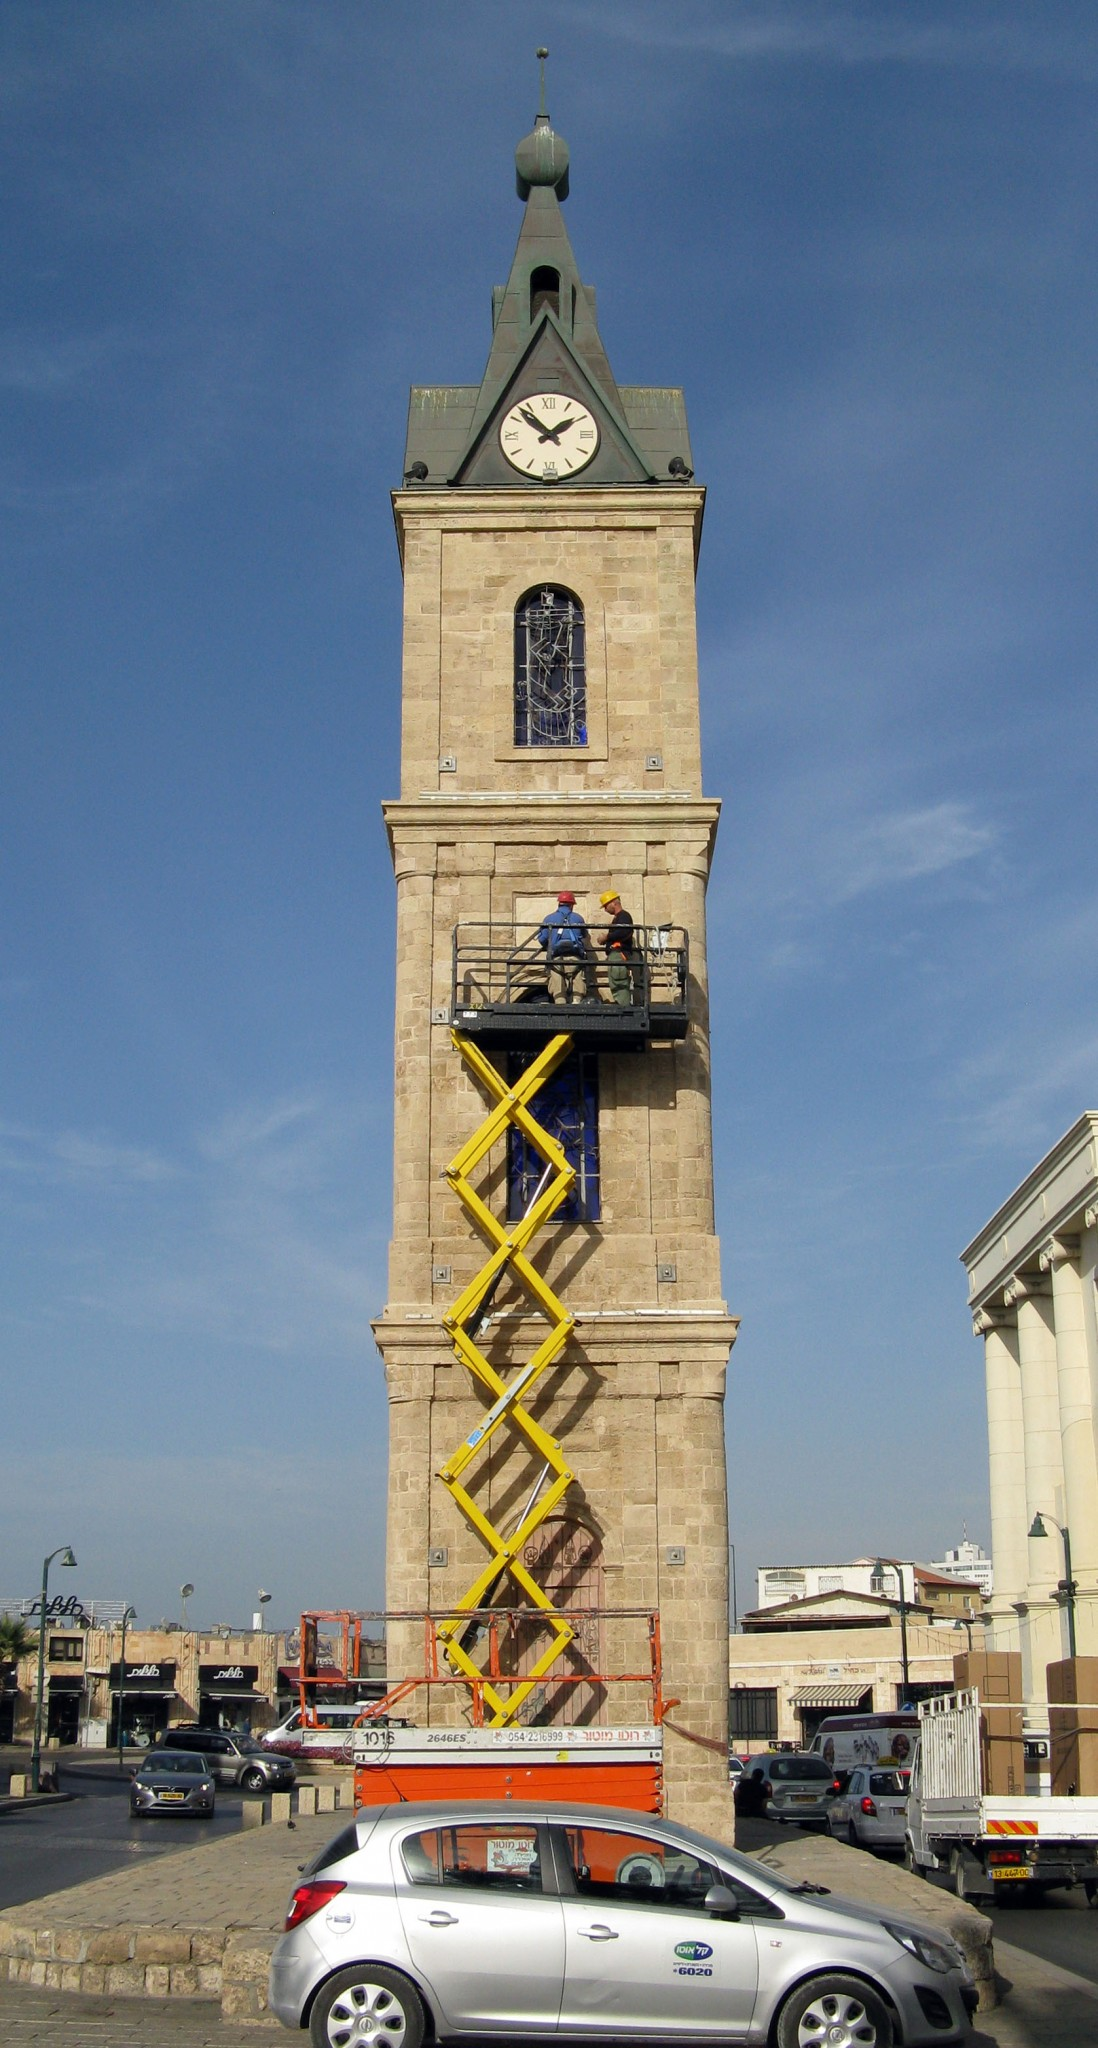 Take a tour of Israel's charming old clock towers | New York Jewish ...